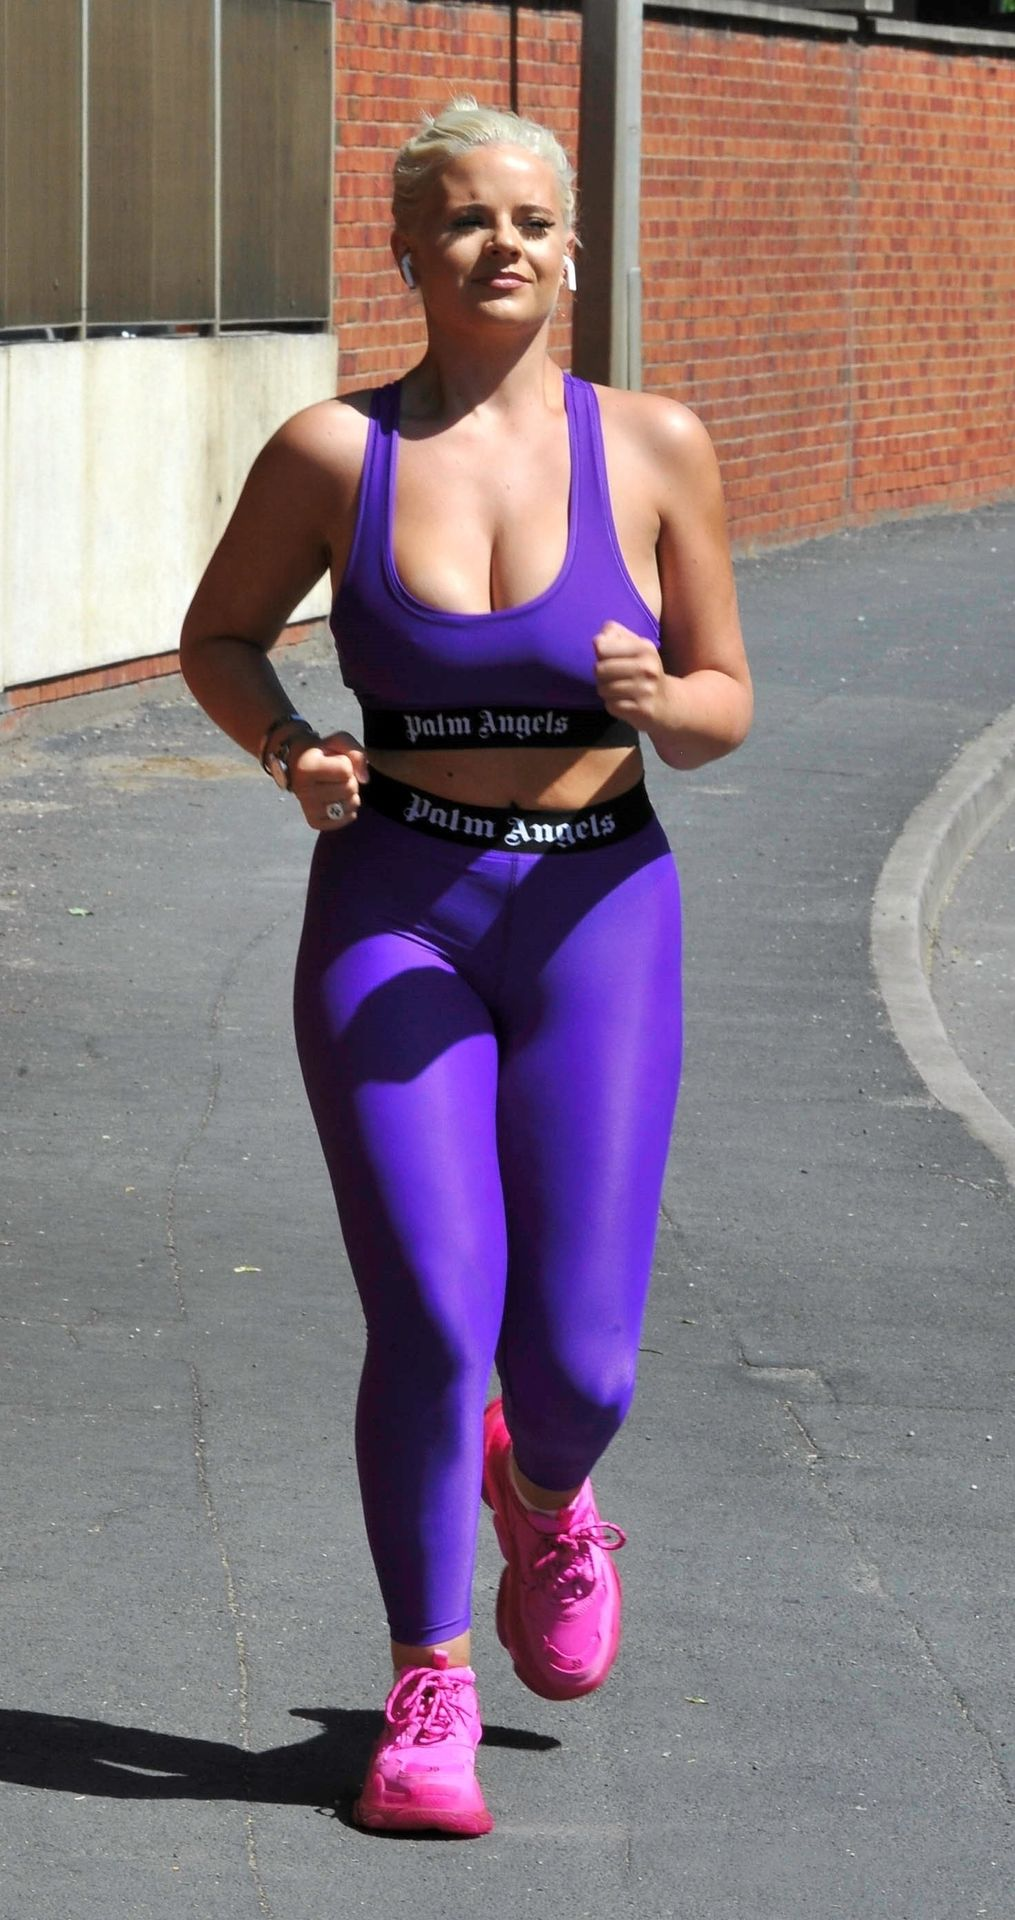 Apollonia Llewellyn Is Pictured Working Out in the Park (17 Photos)